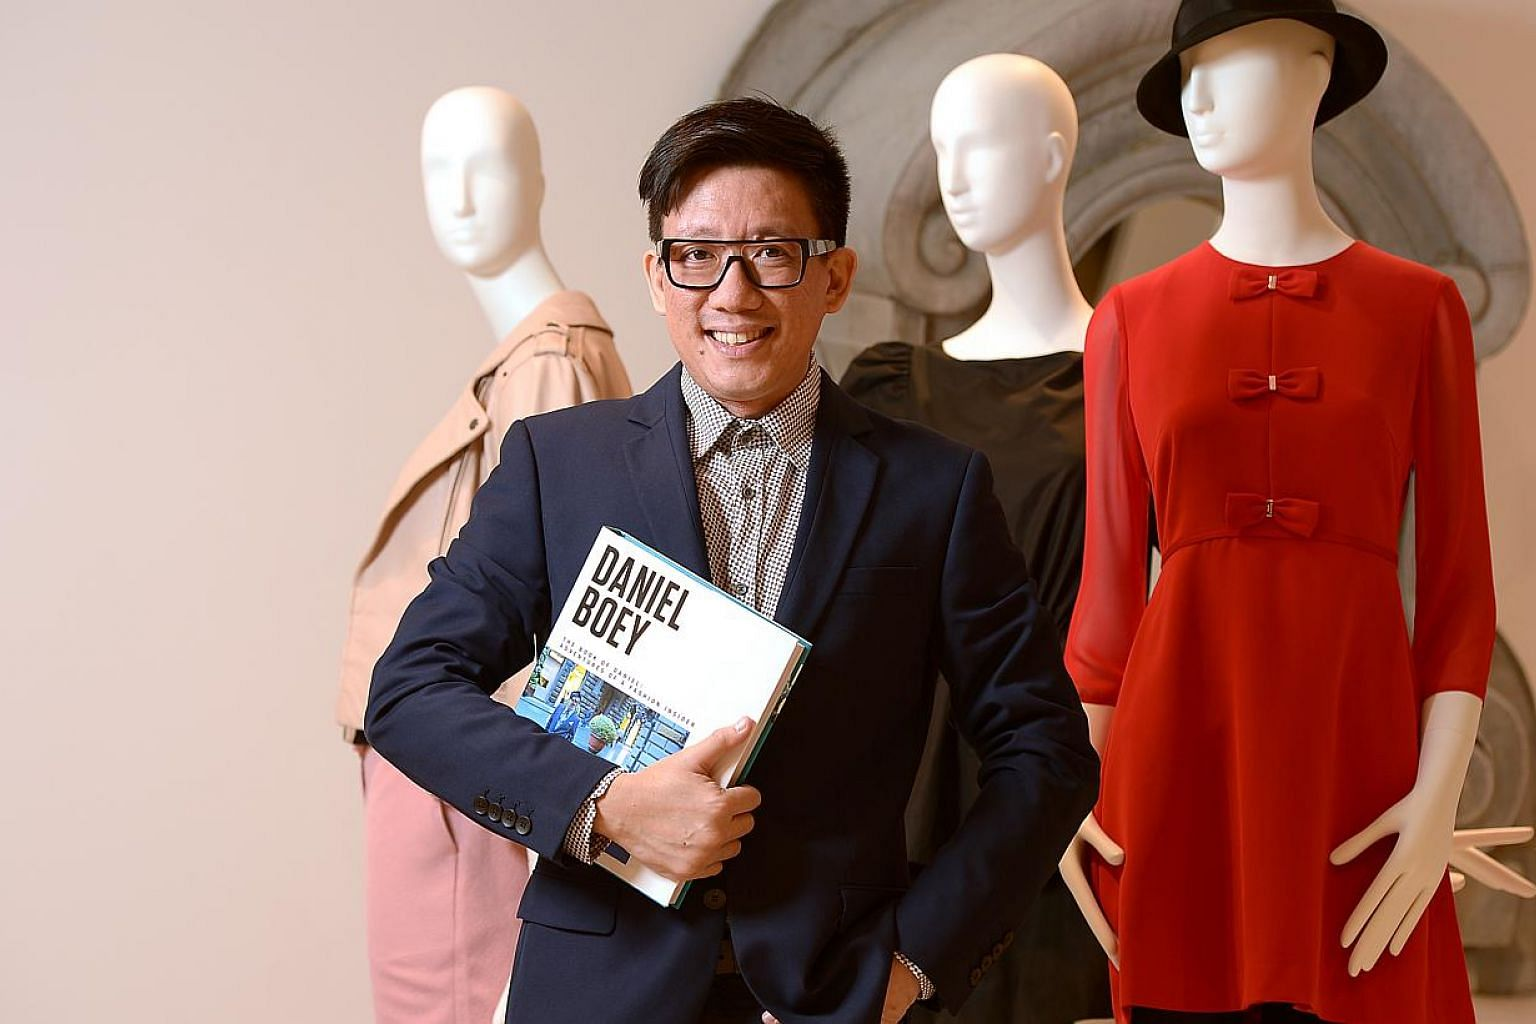 Daniel Boey's new autobiography is called The Book Of Daniel: Adventures Of A Fashion Insider. -- ST PHOTO: DESMOND WEE